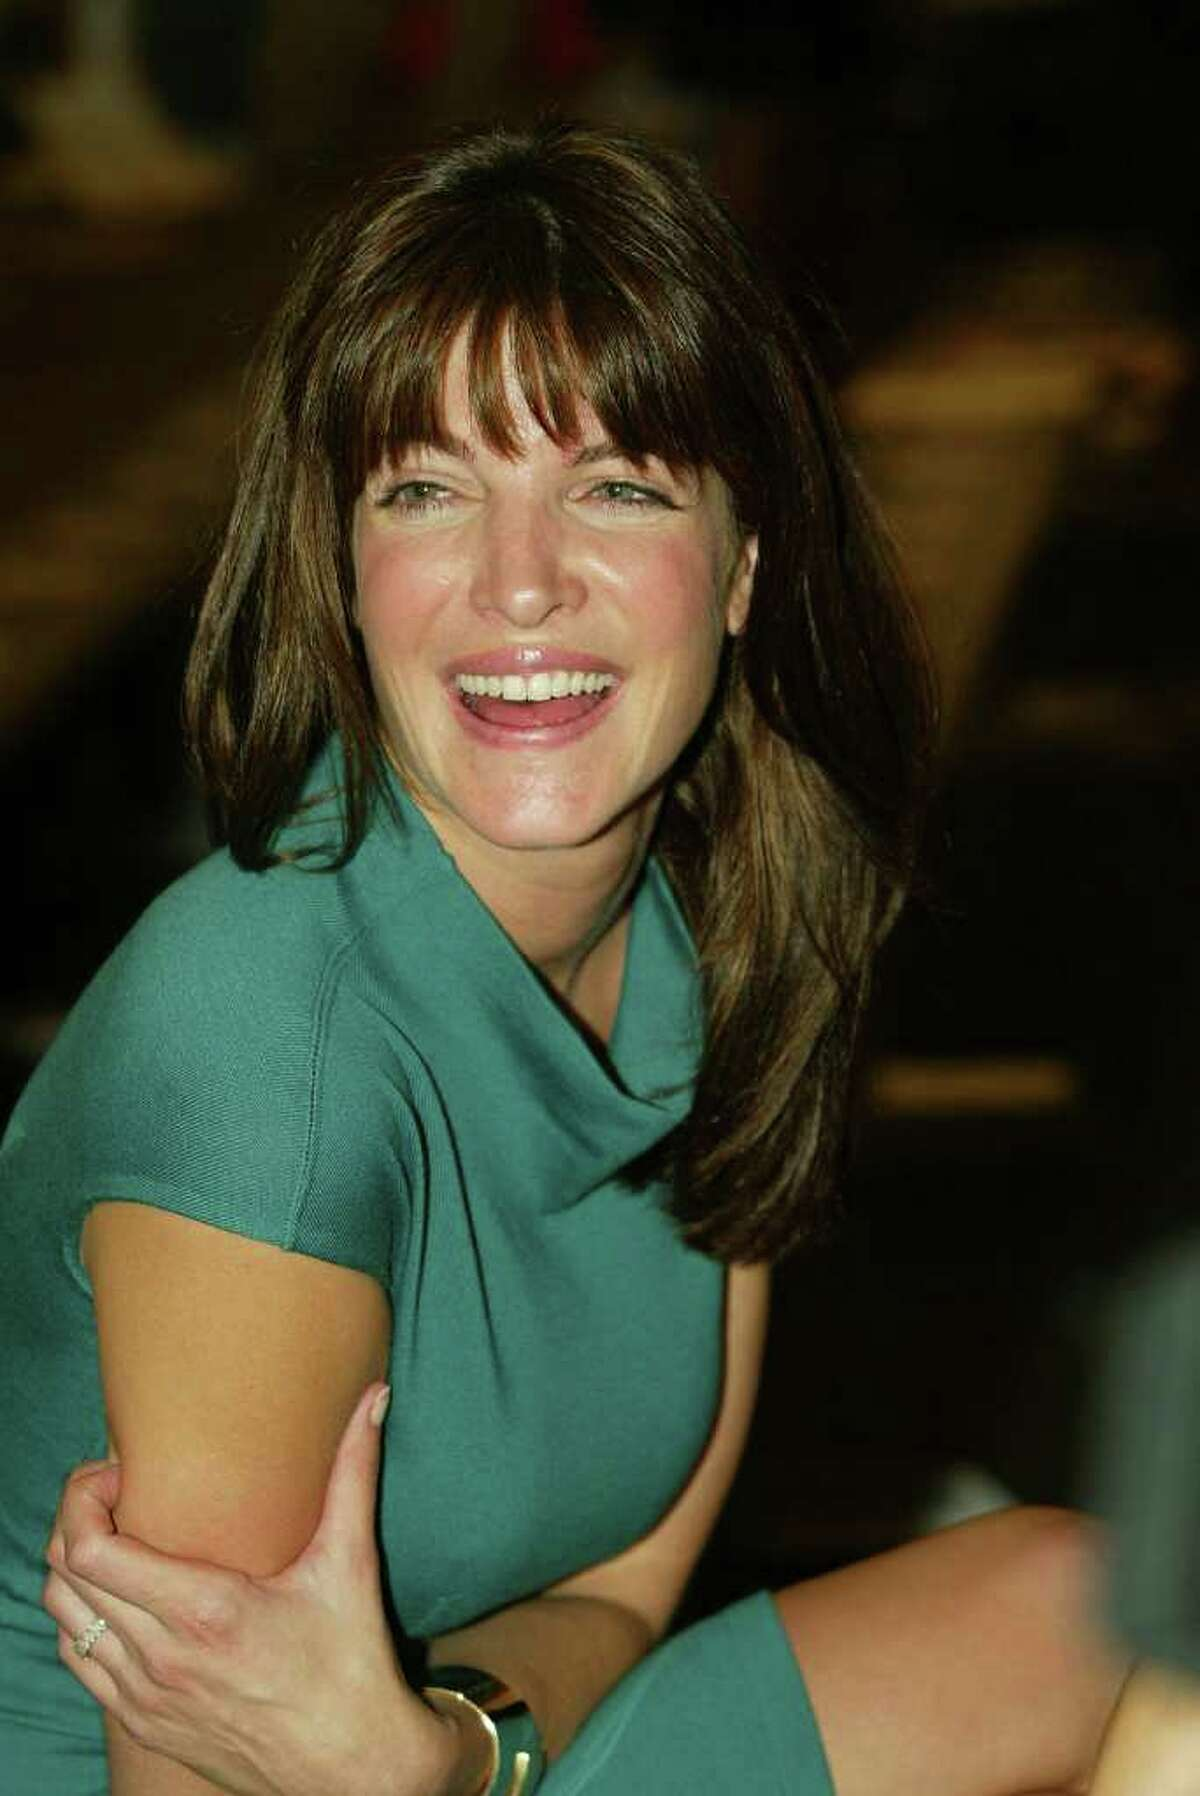 Model Stephanie Seymour attends the Proenza Schouler Spring/Summer 2004 Collection at Bryant Park during the 7th on Sixth Mercedes-Benz Fashion Week on September 17, 2003 in New York City.